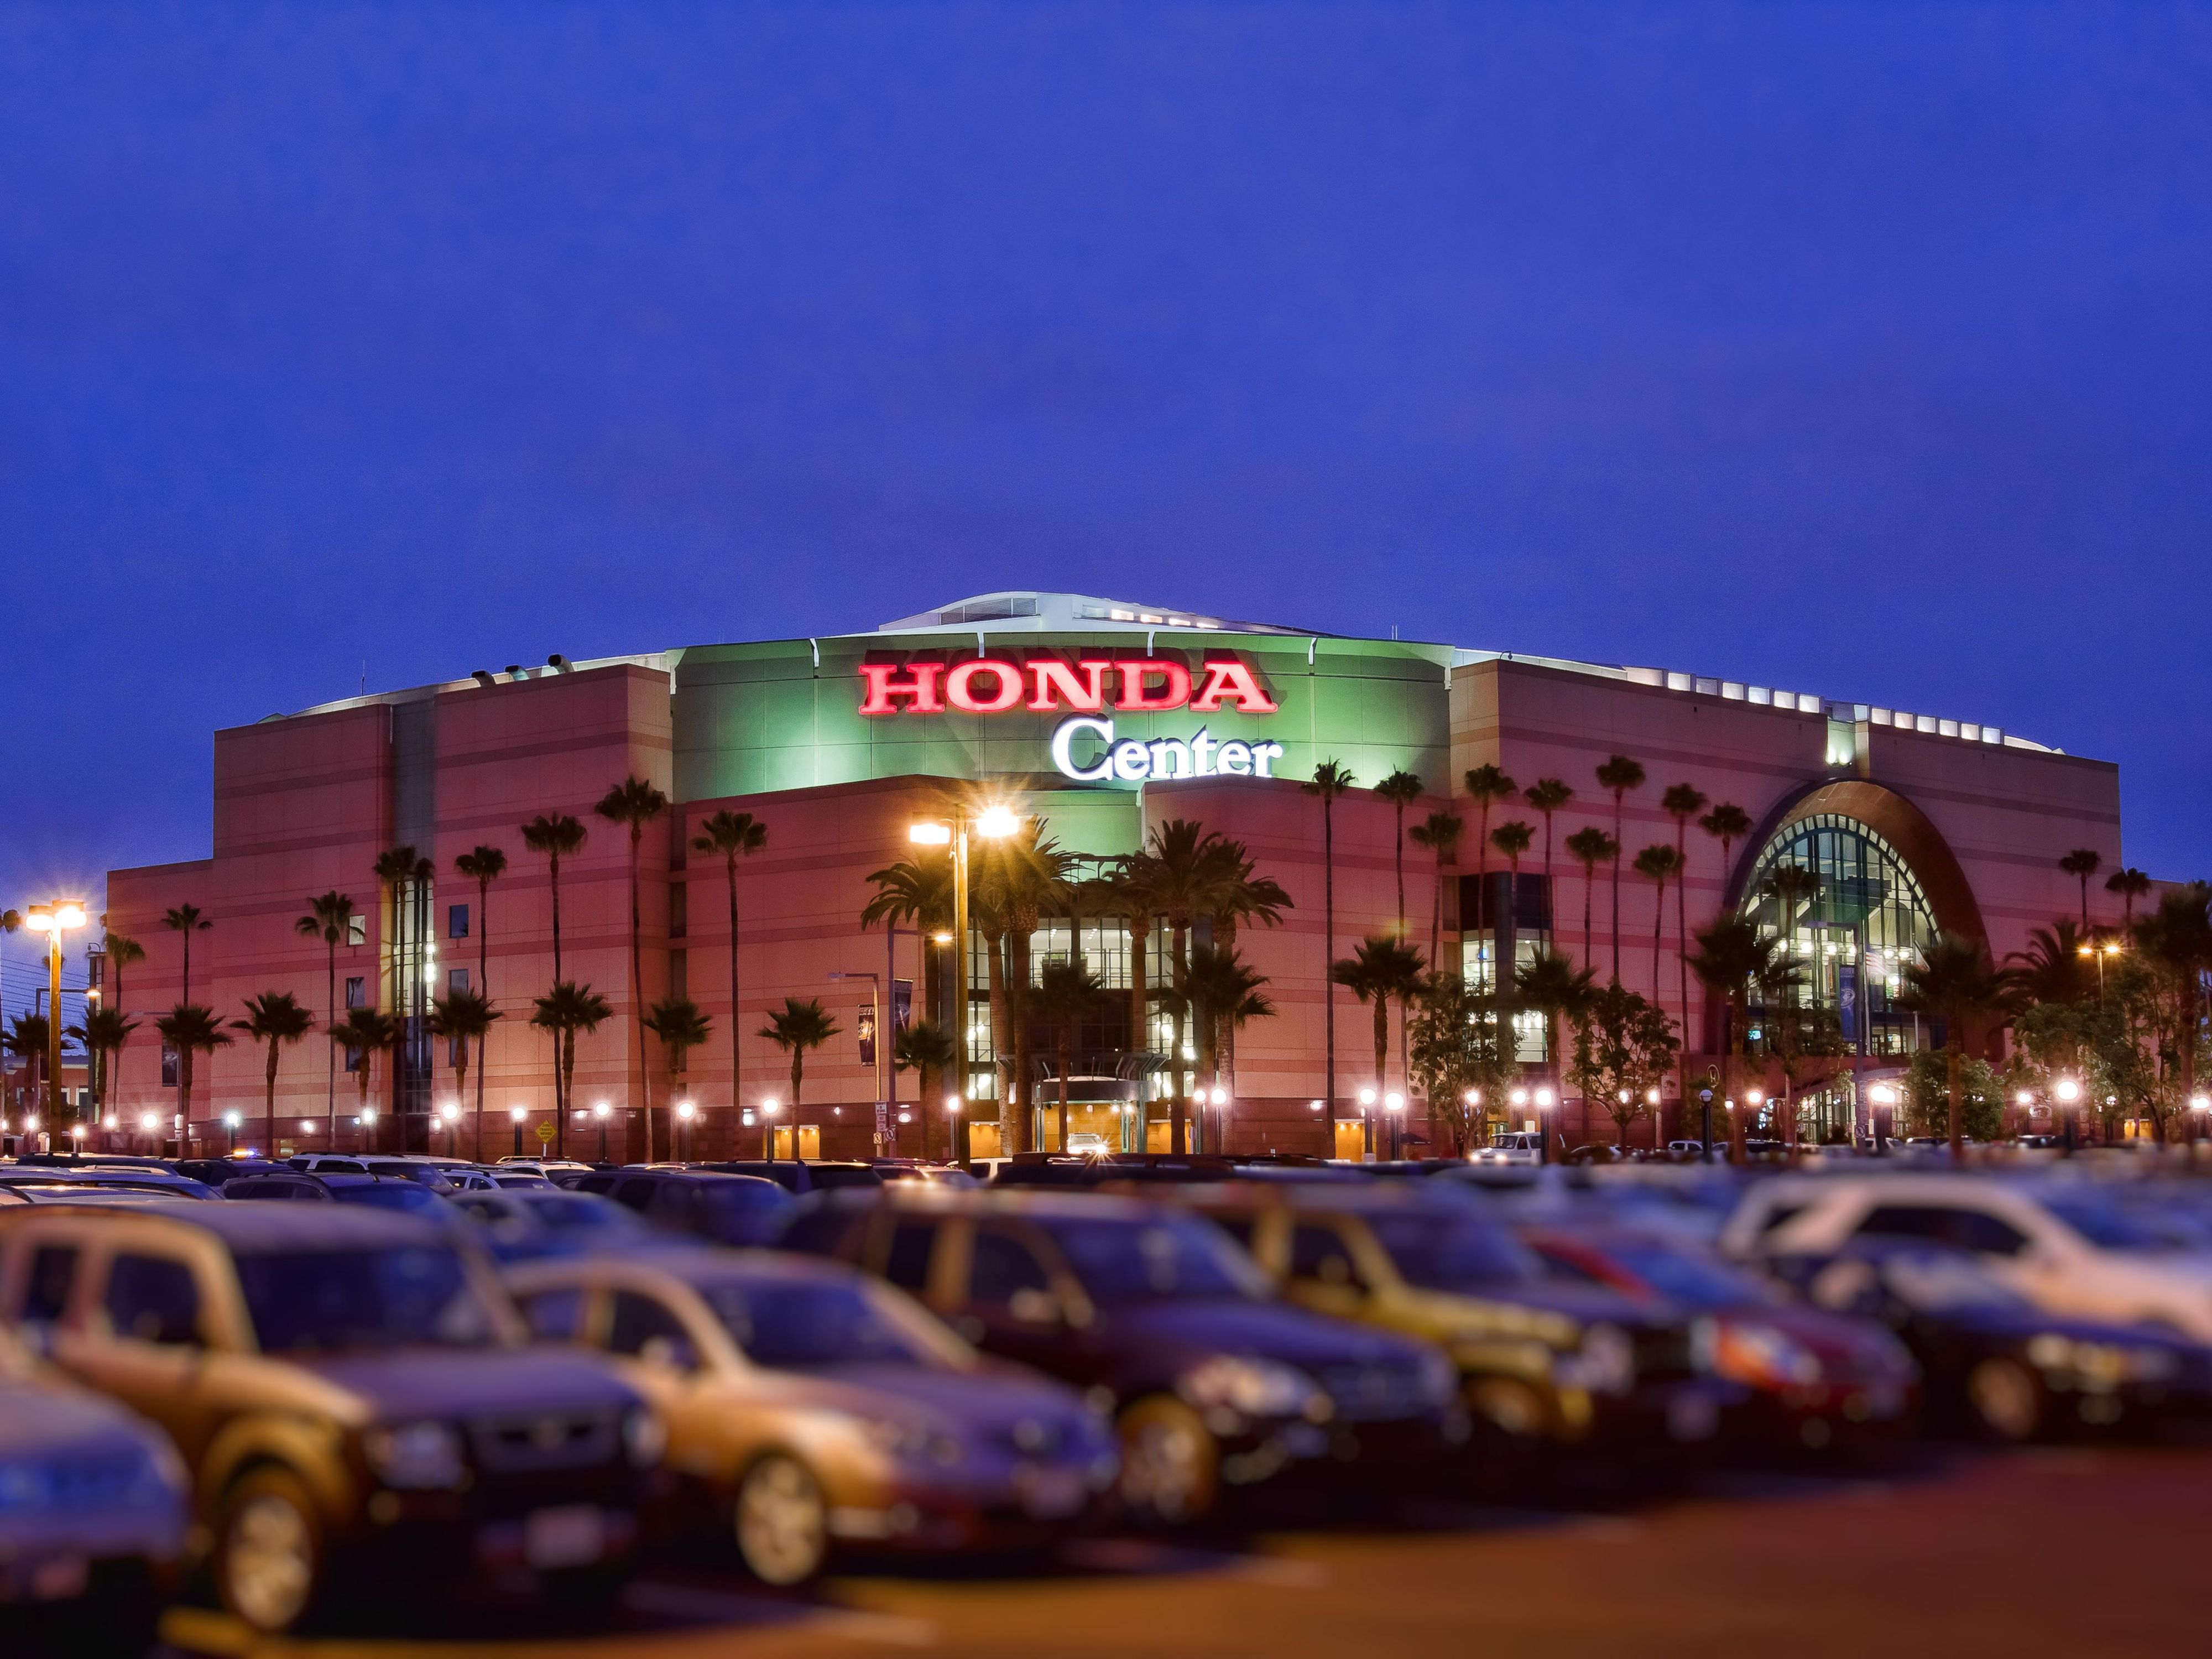 The Honda Center Anaheim